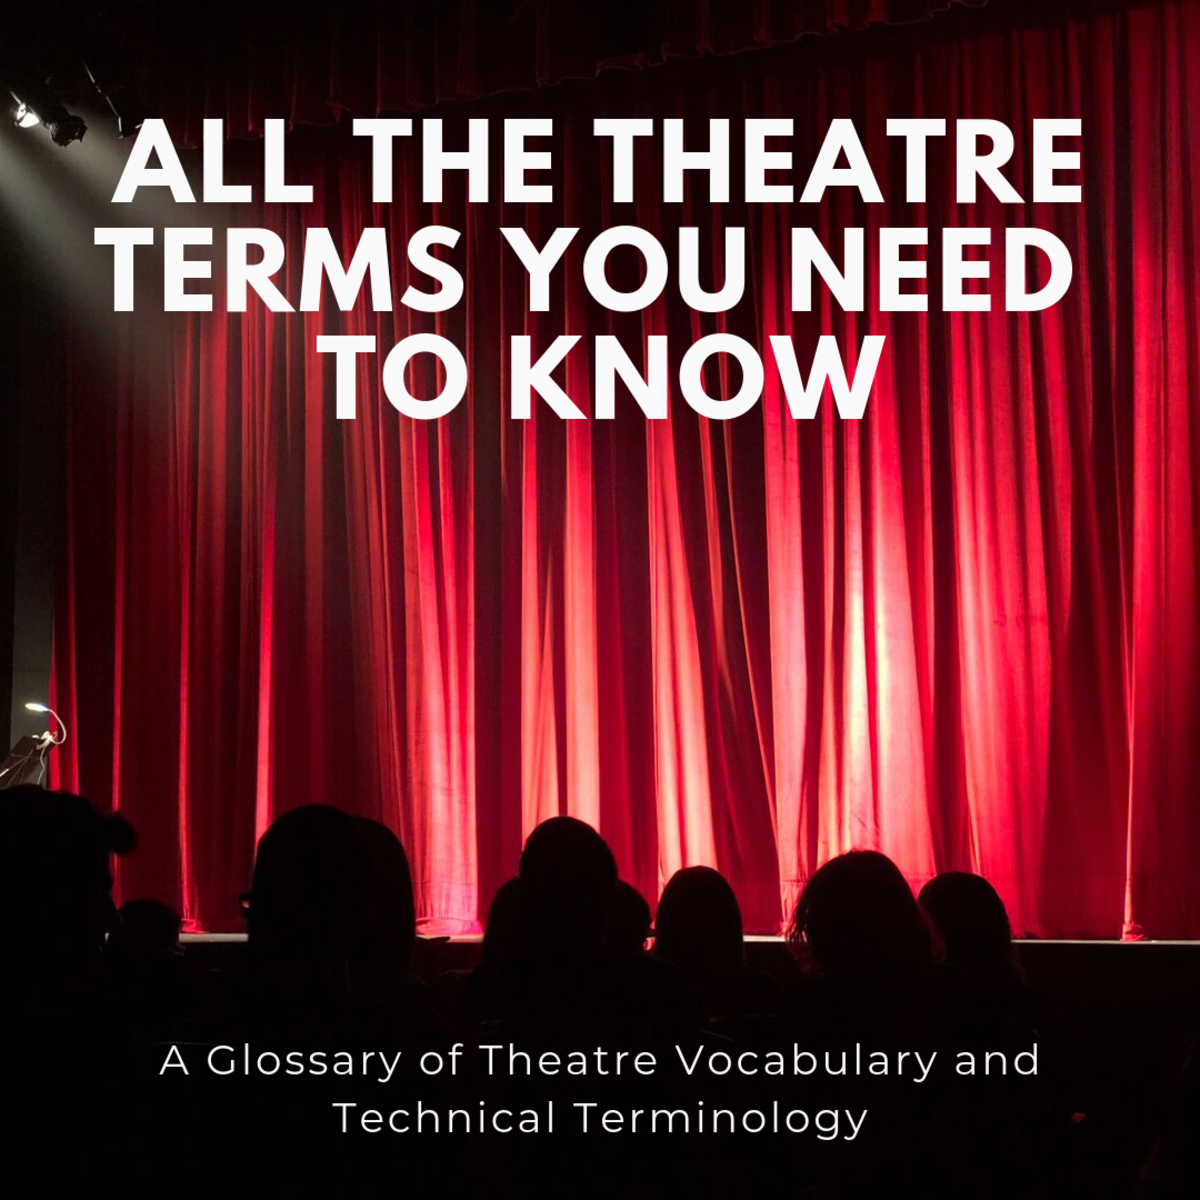 Learn Broadway and stage-related vocabulary in this glossary.